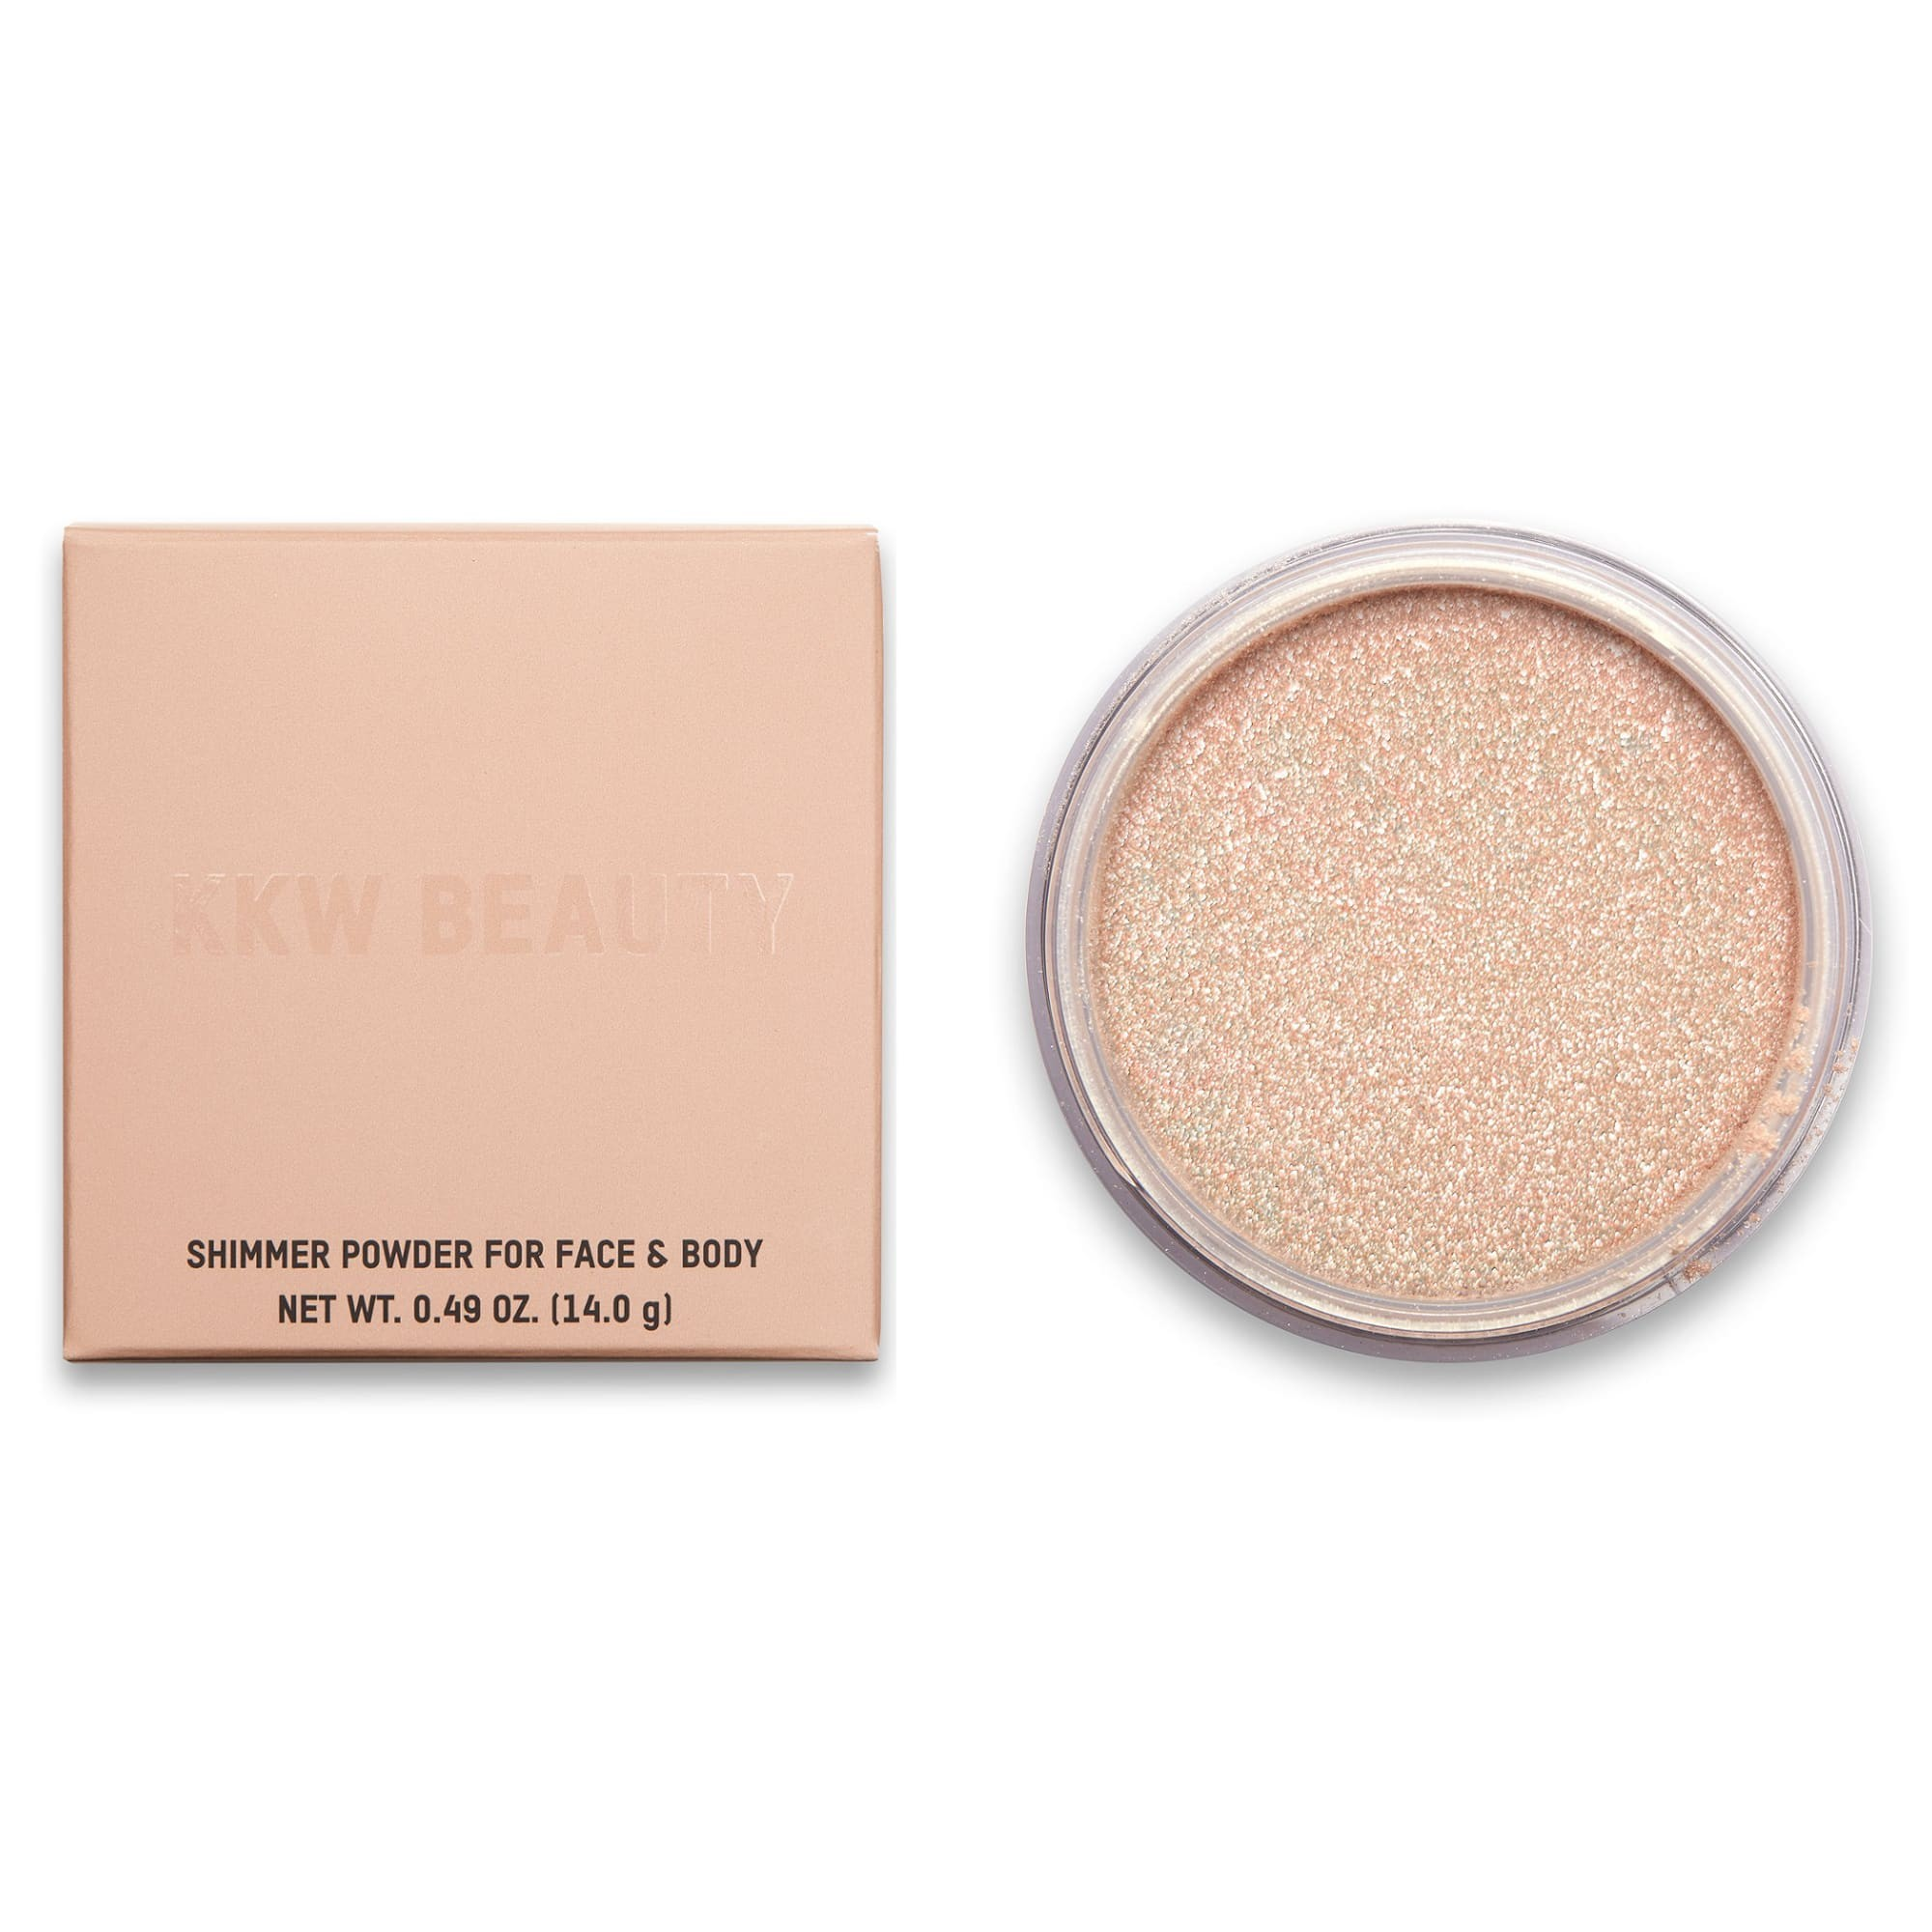 KKW Beauty Loose Shimmer Powder for Face & Body Pearl